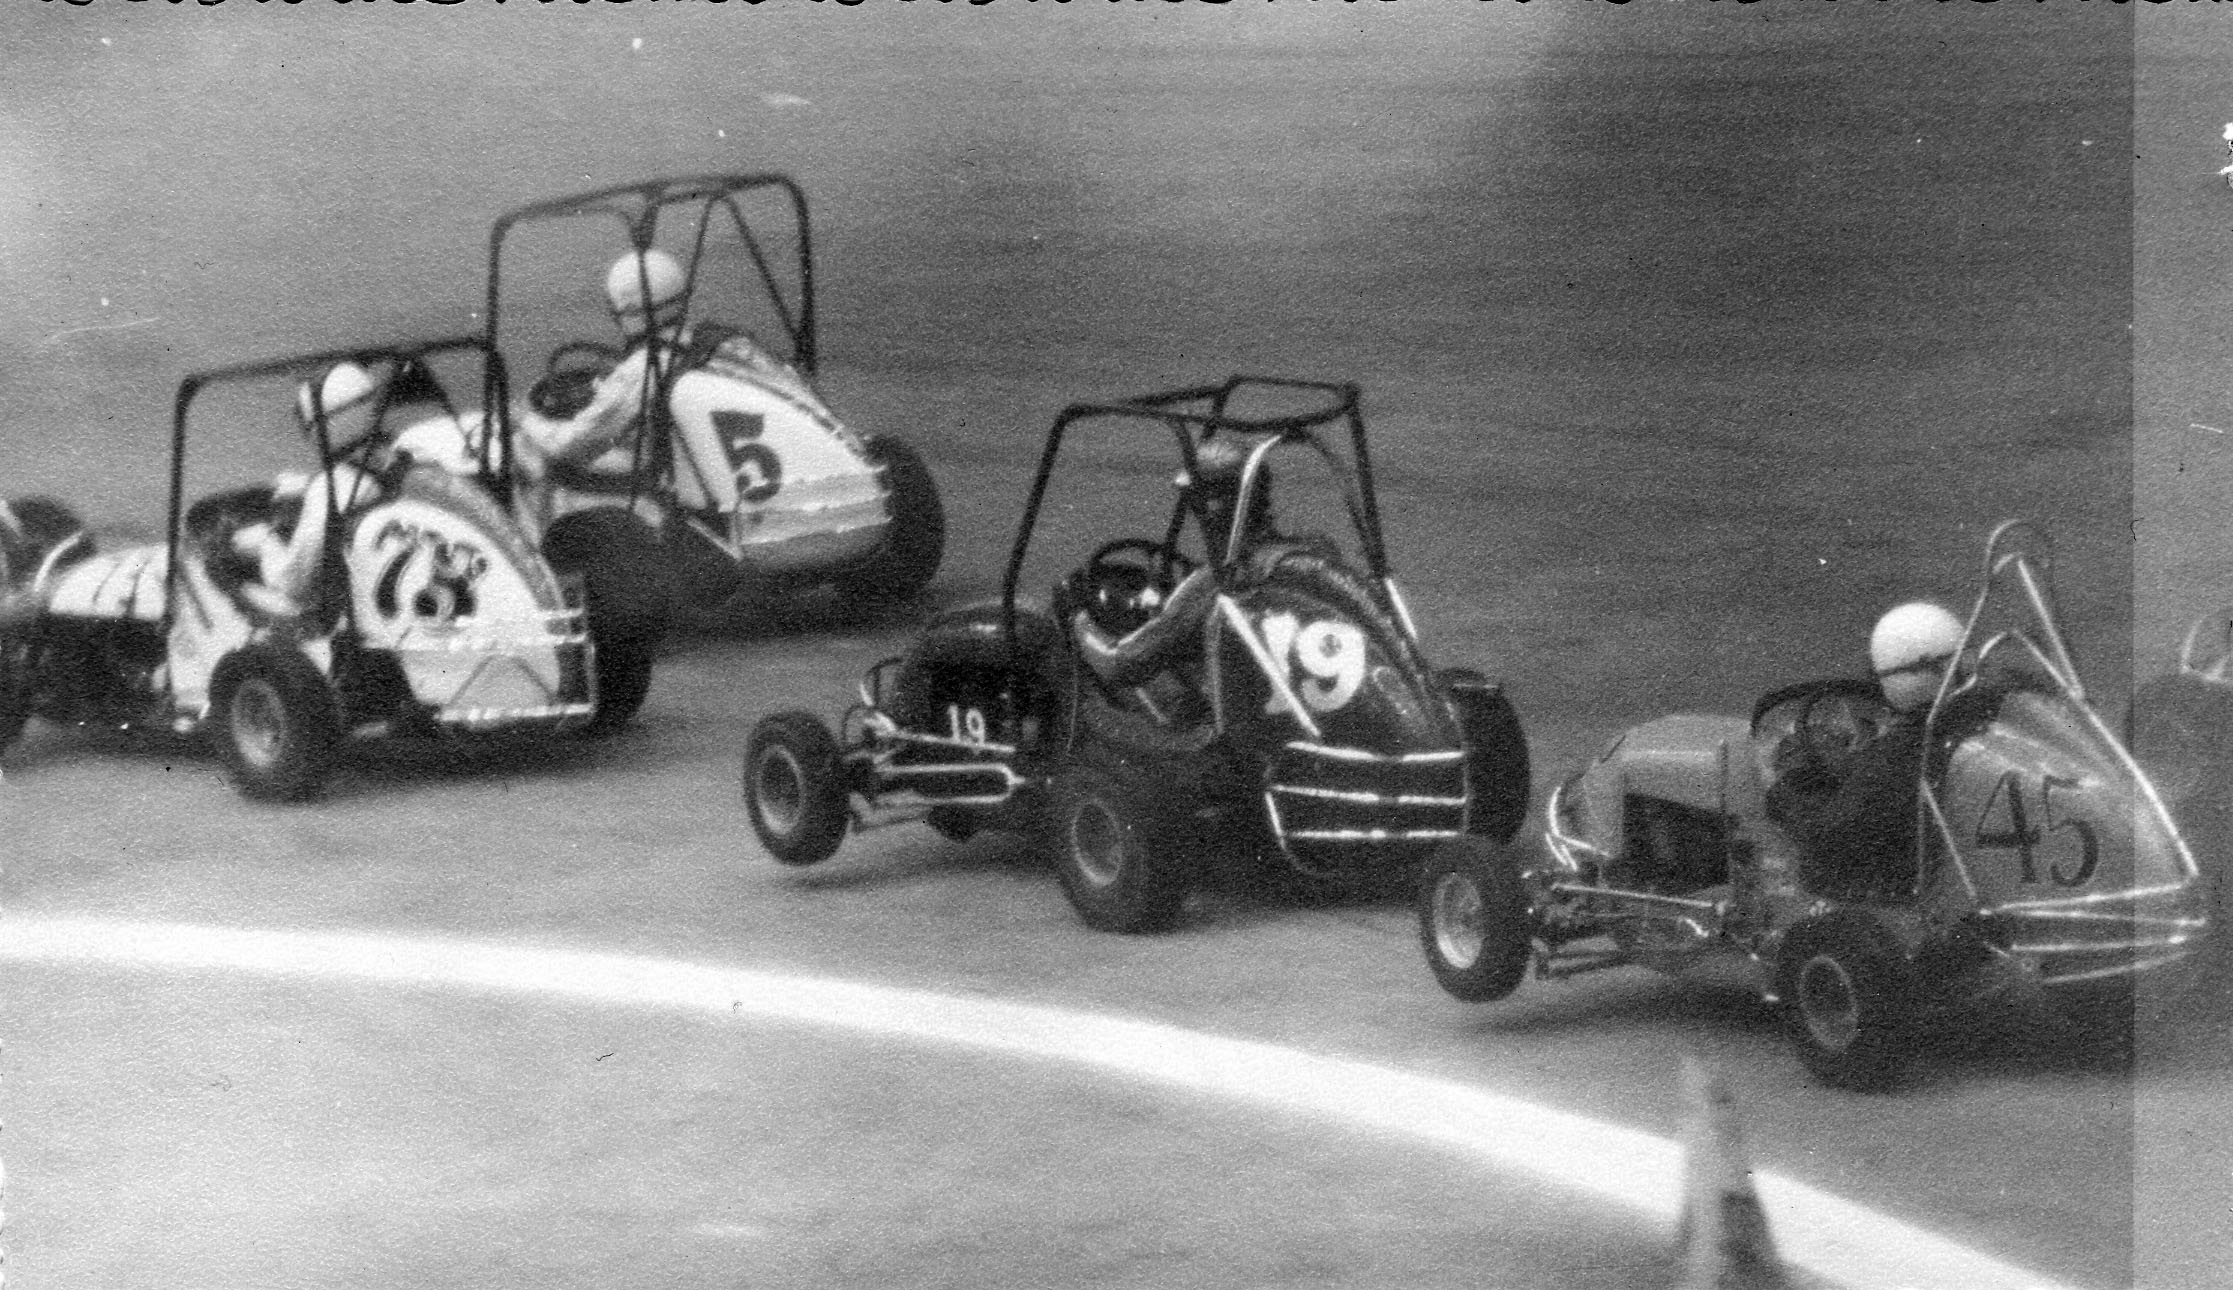 January 23, 1971 -- 73 Jack Bertling, 5 Jerry Wall, 19 Paul Weisel, Jr., 45 Len Duncan, 8-time ARDC midget champion. Everyone's hiking the left front coming off turn two. Source: EARHS